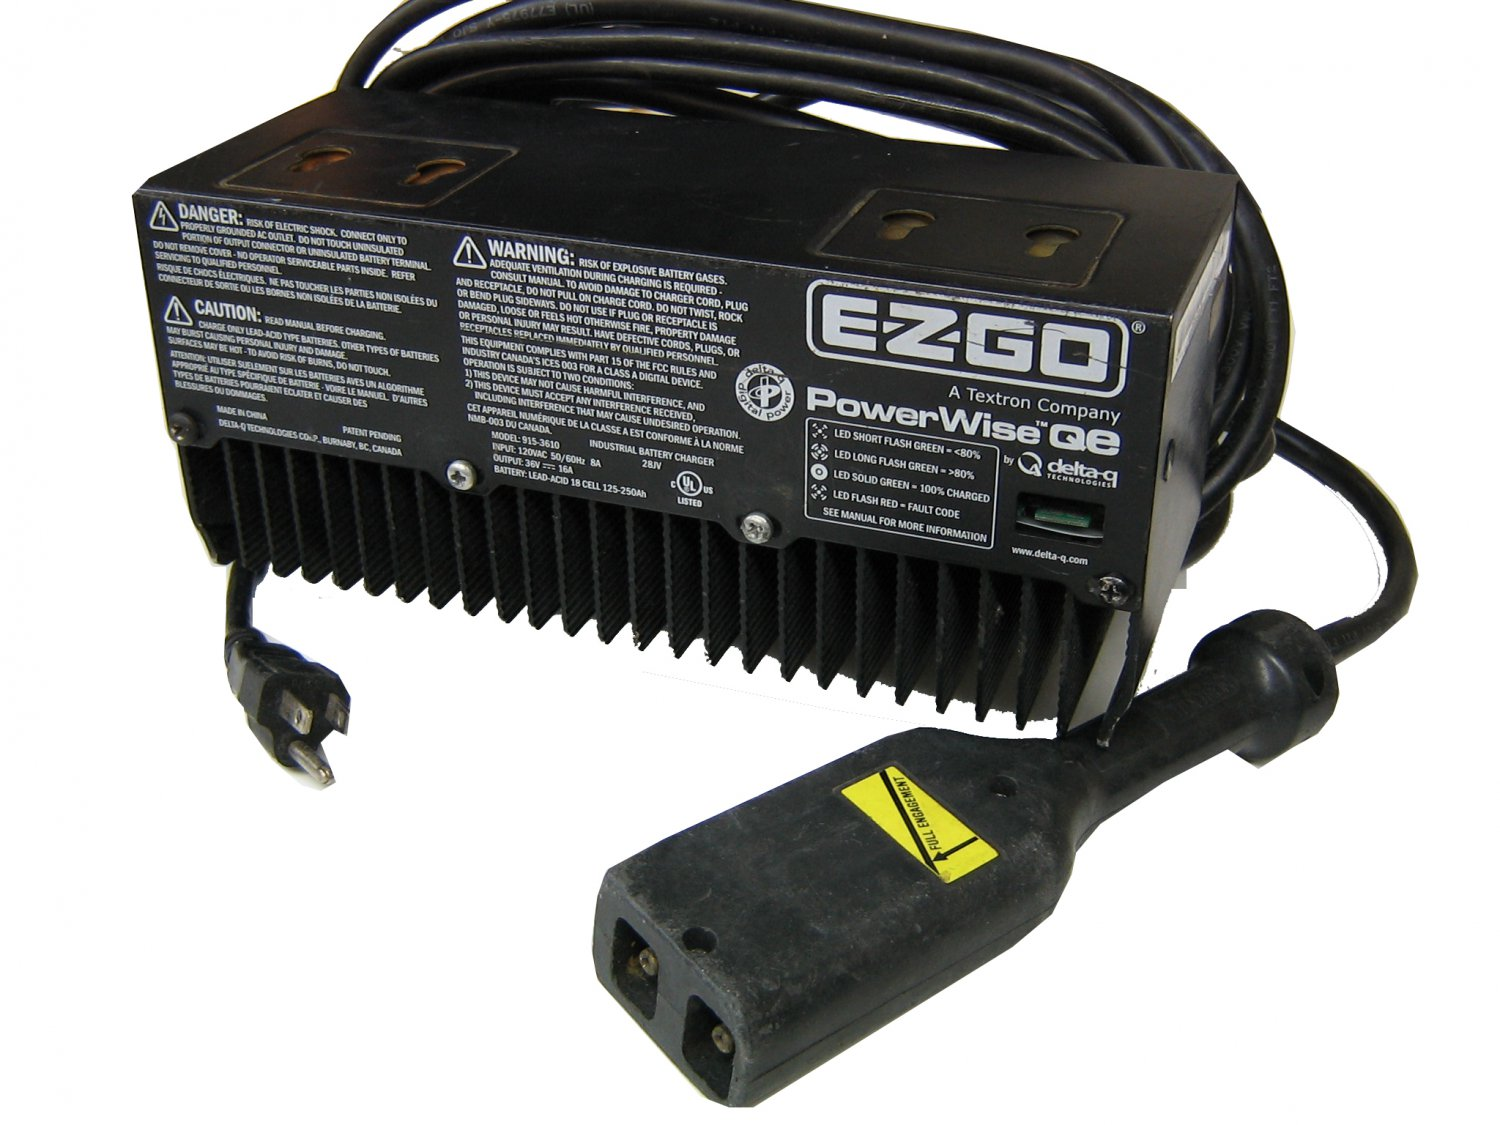 ez go powerwise 2 charger manual